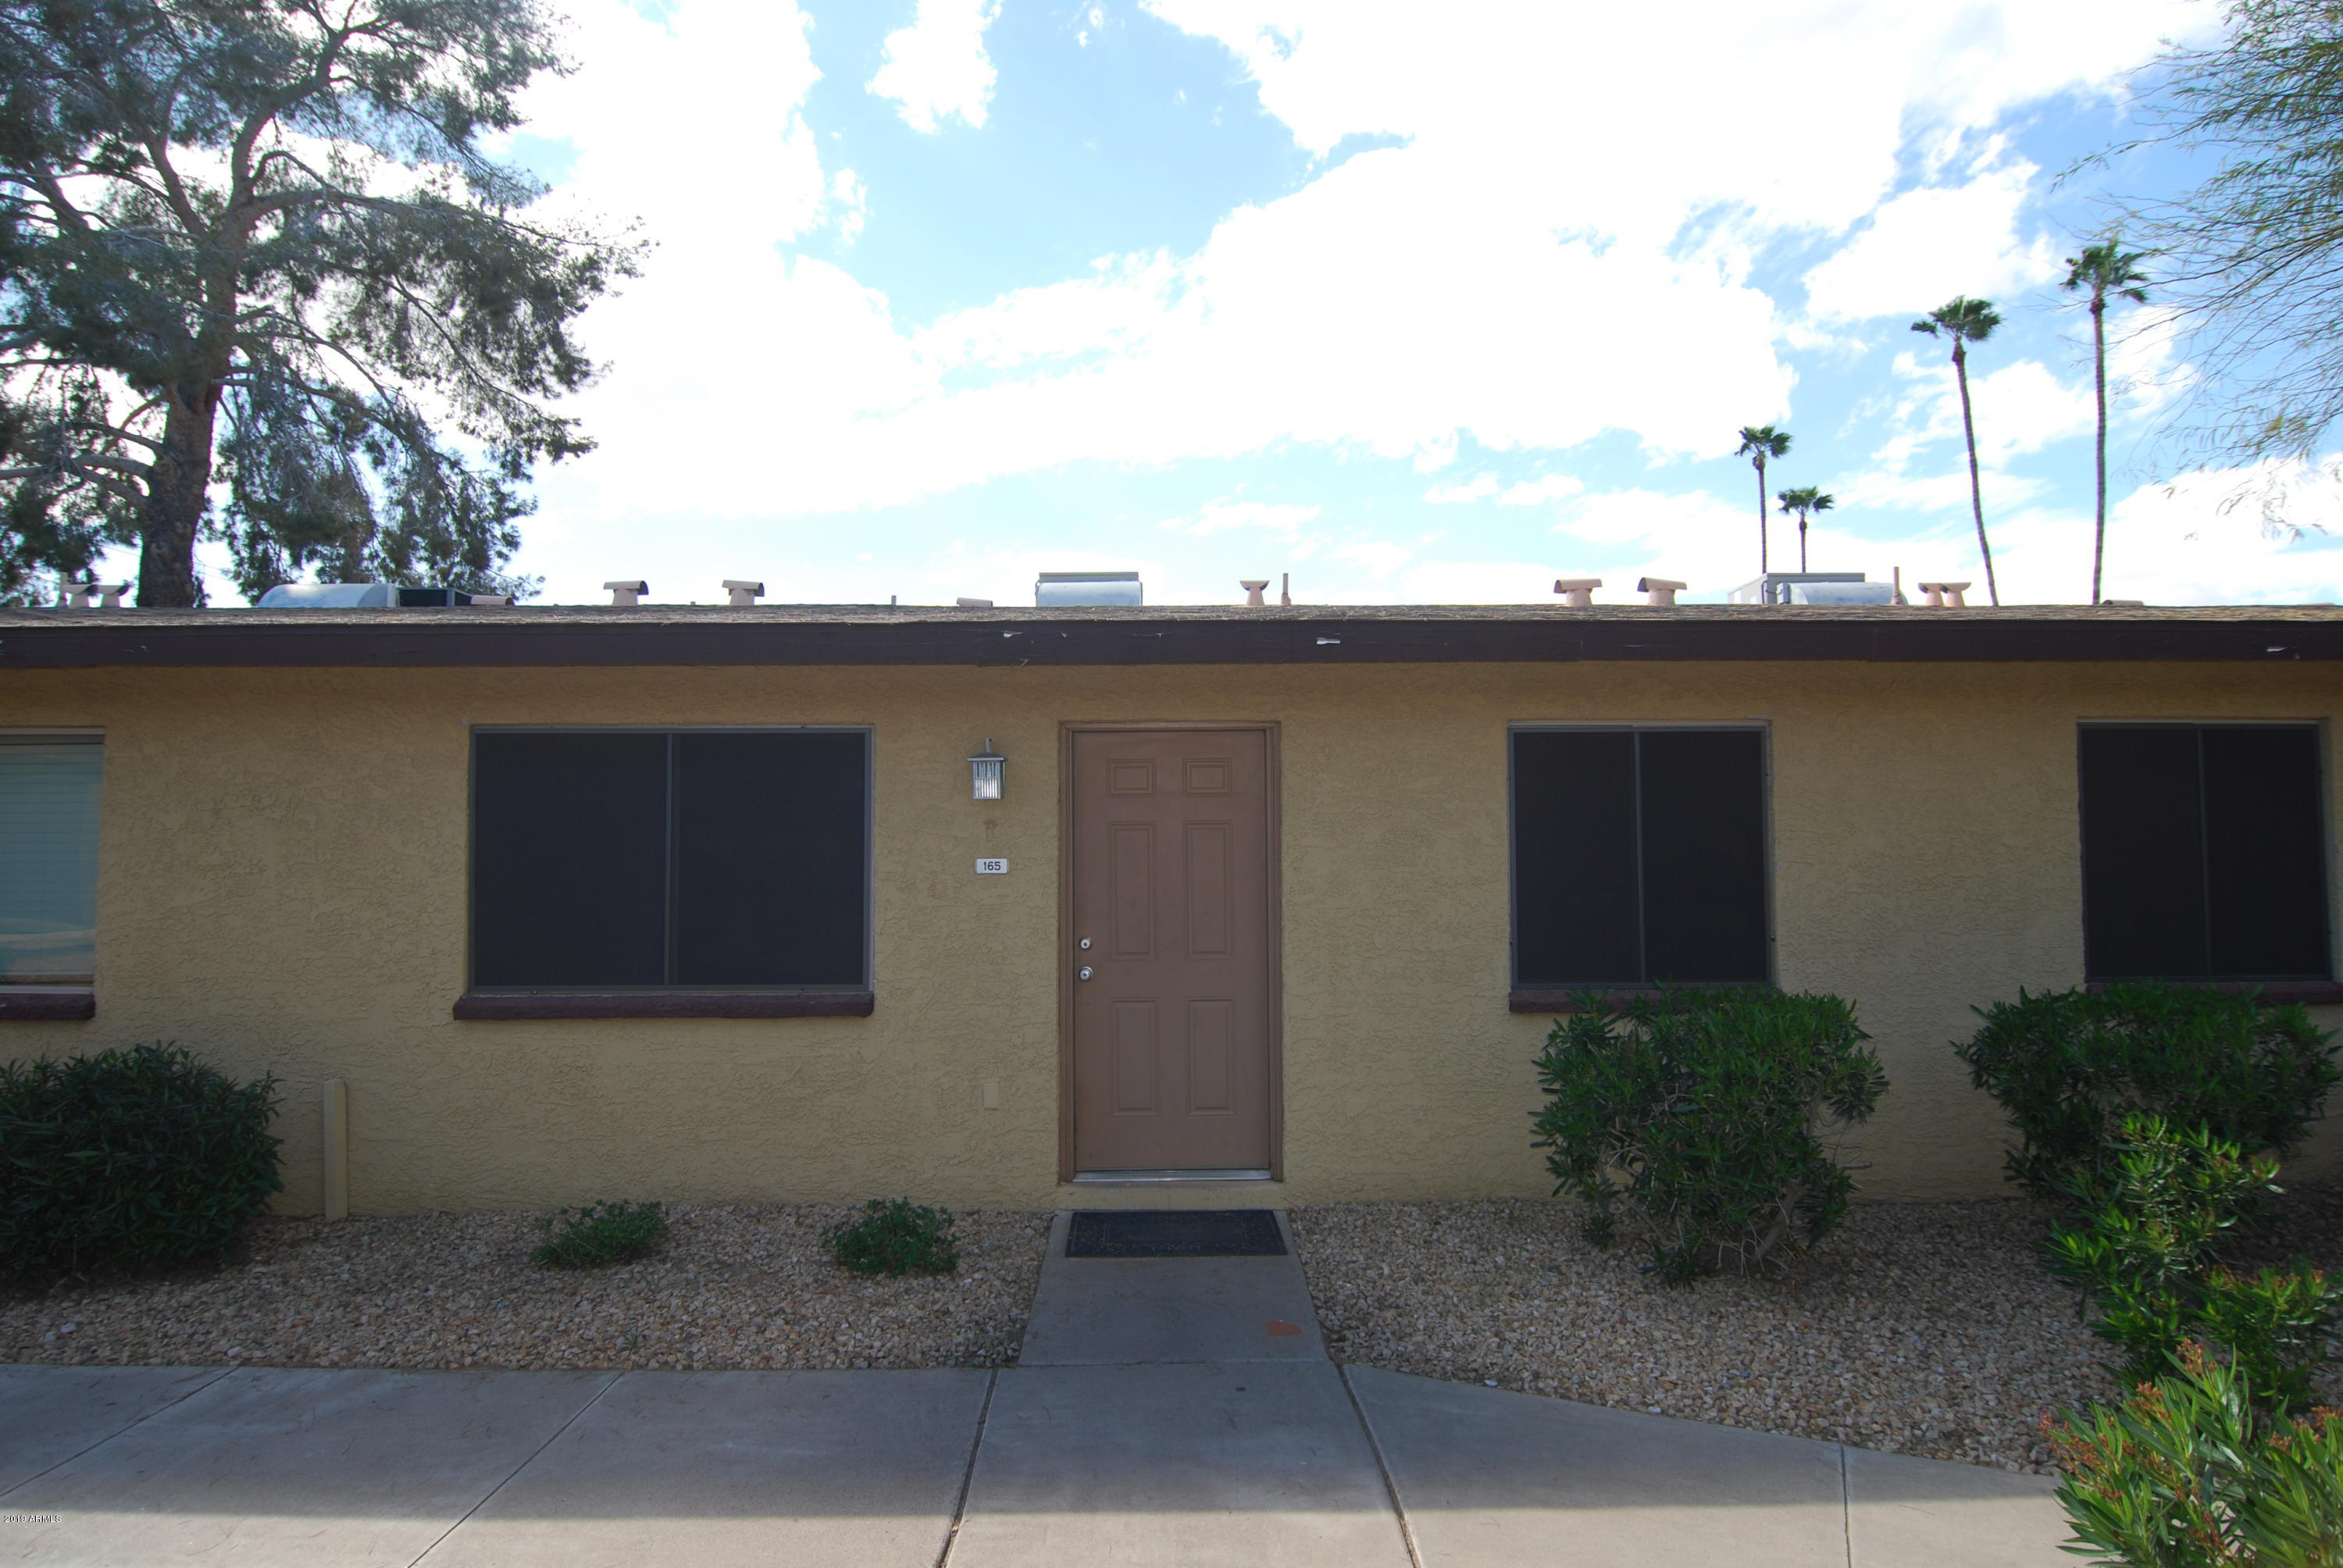 Photo of 3402 N 32ND Street #165, Phoenix, AZ 85018